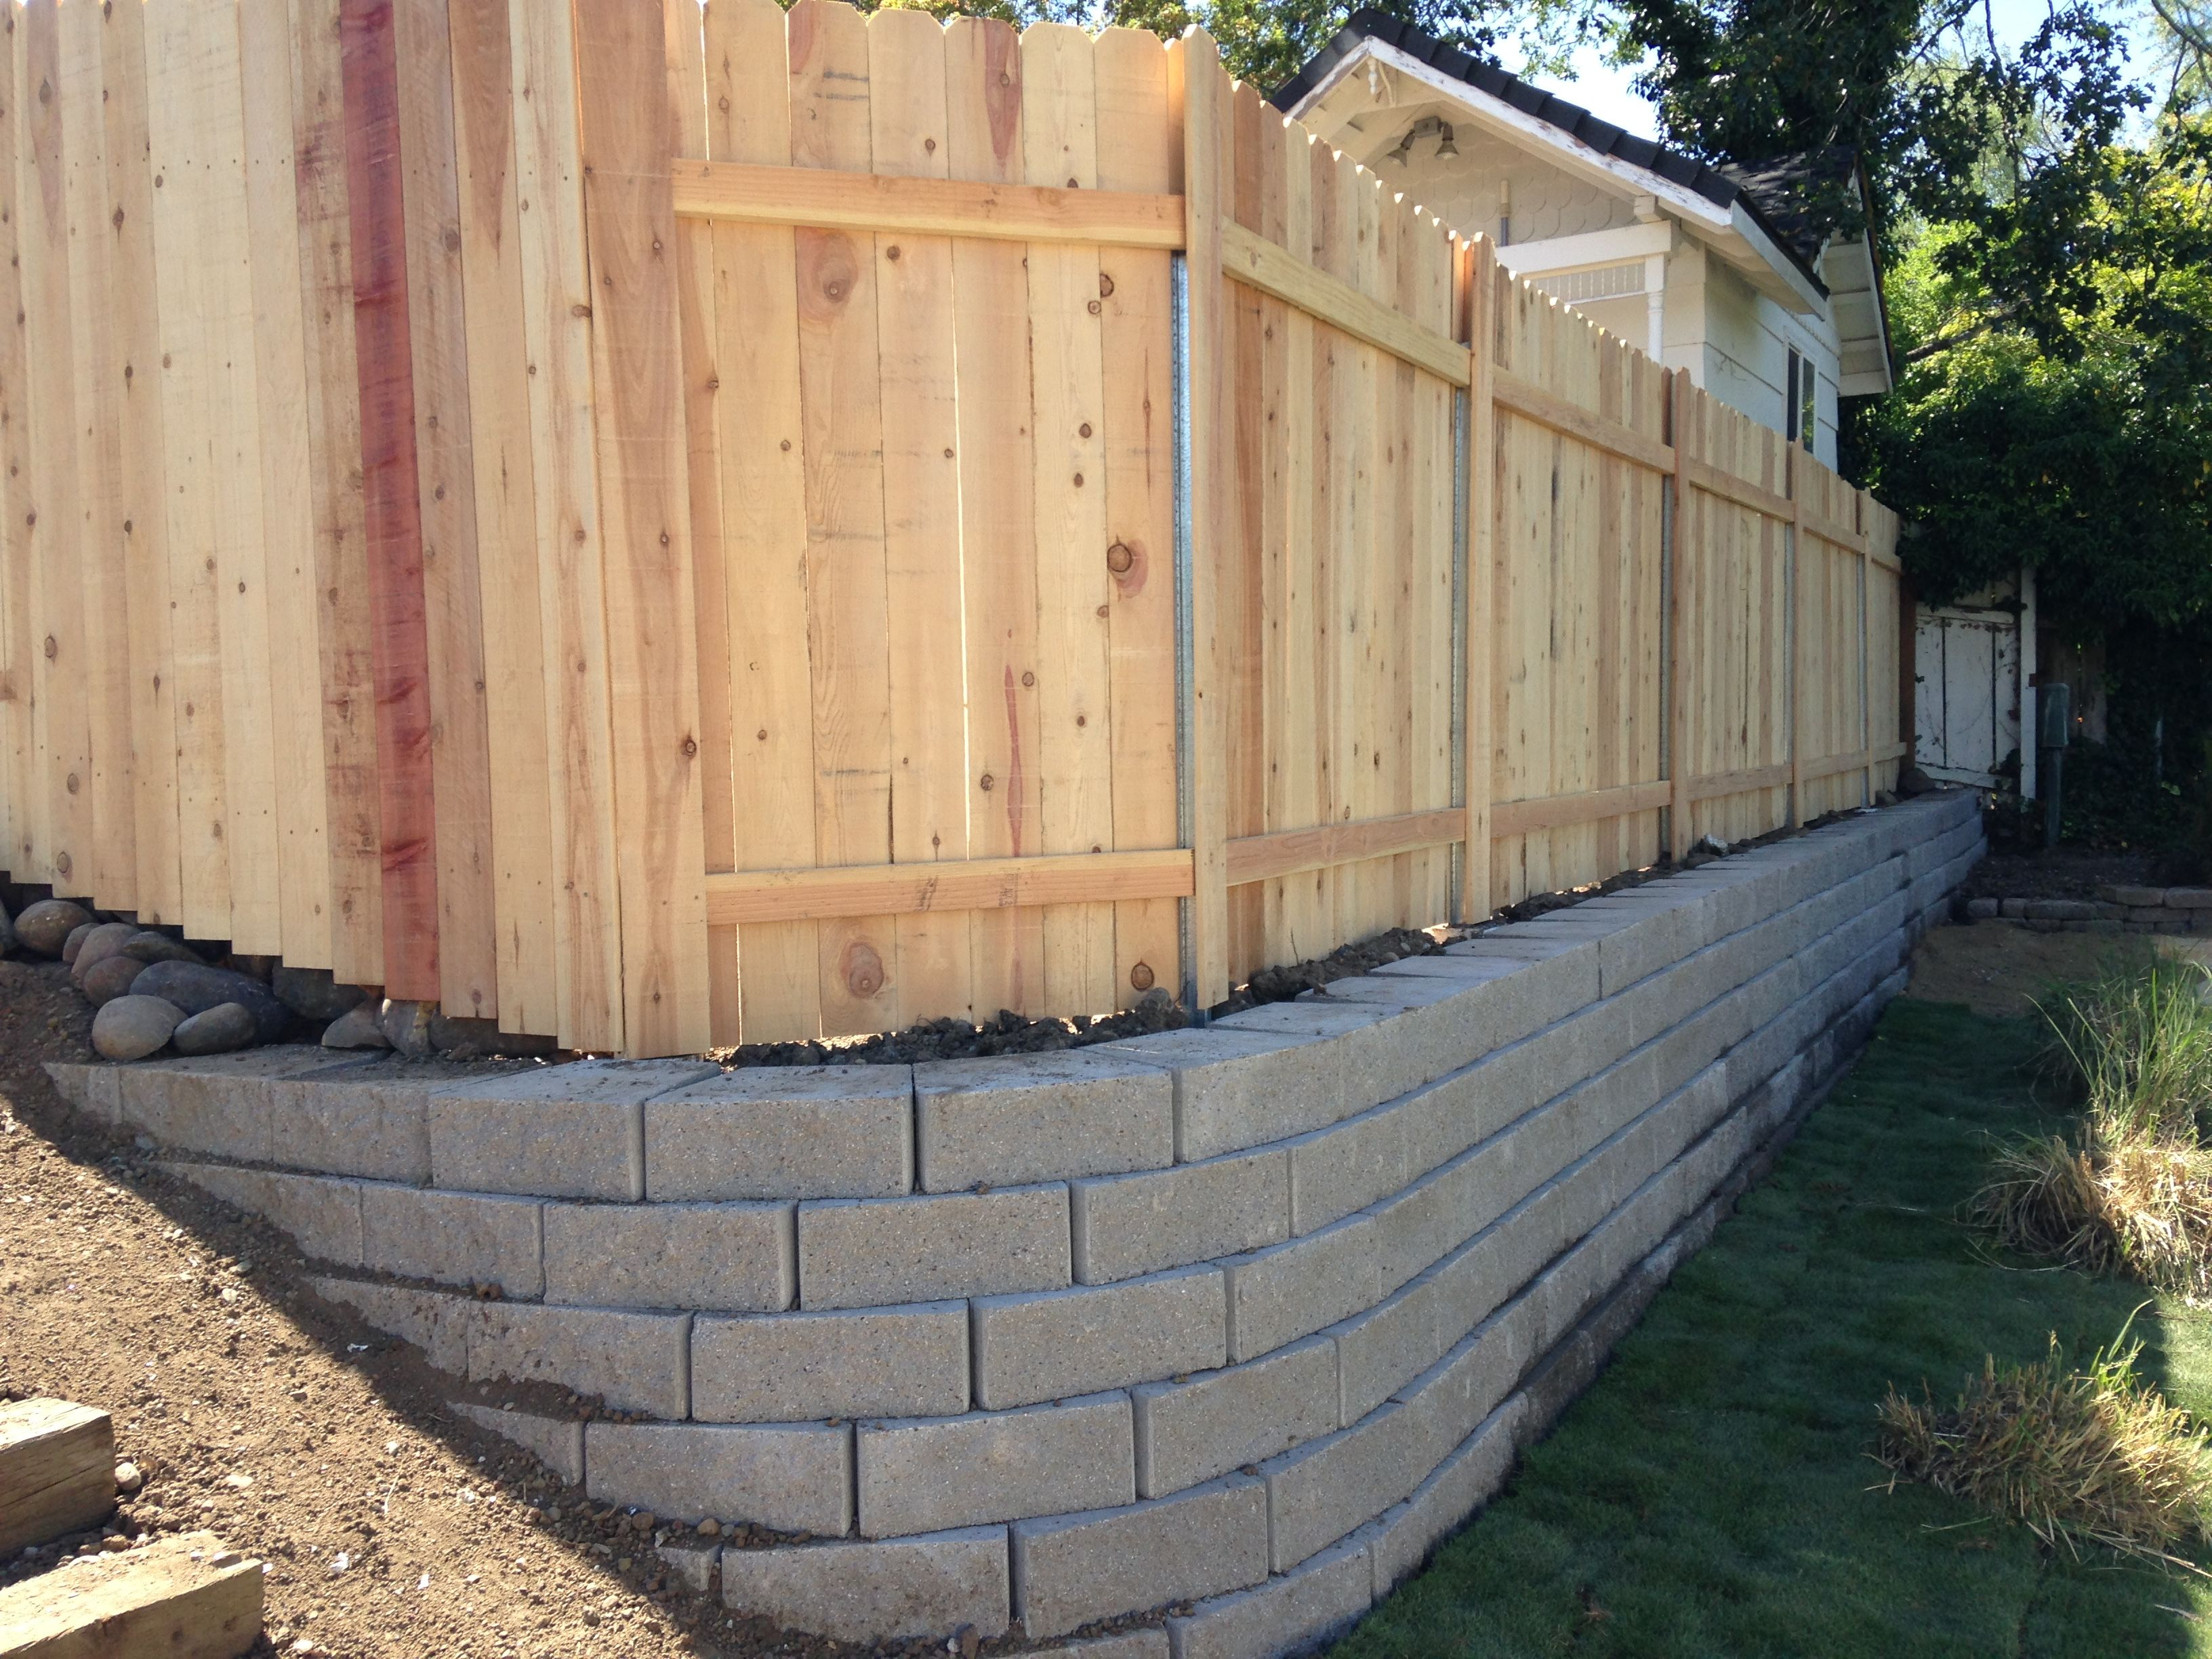 Retaining Wall With Fence On Top Backyard Retaining Walls Landscaping Retaining Walls Backyard Fences